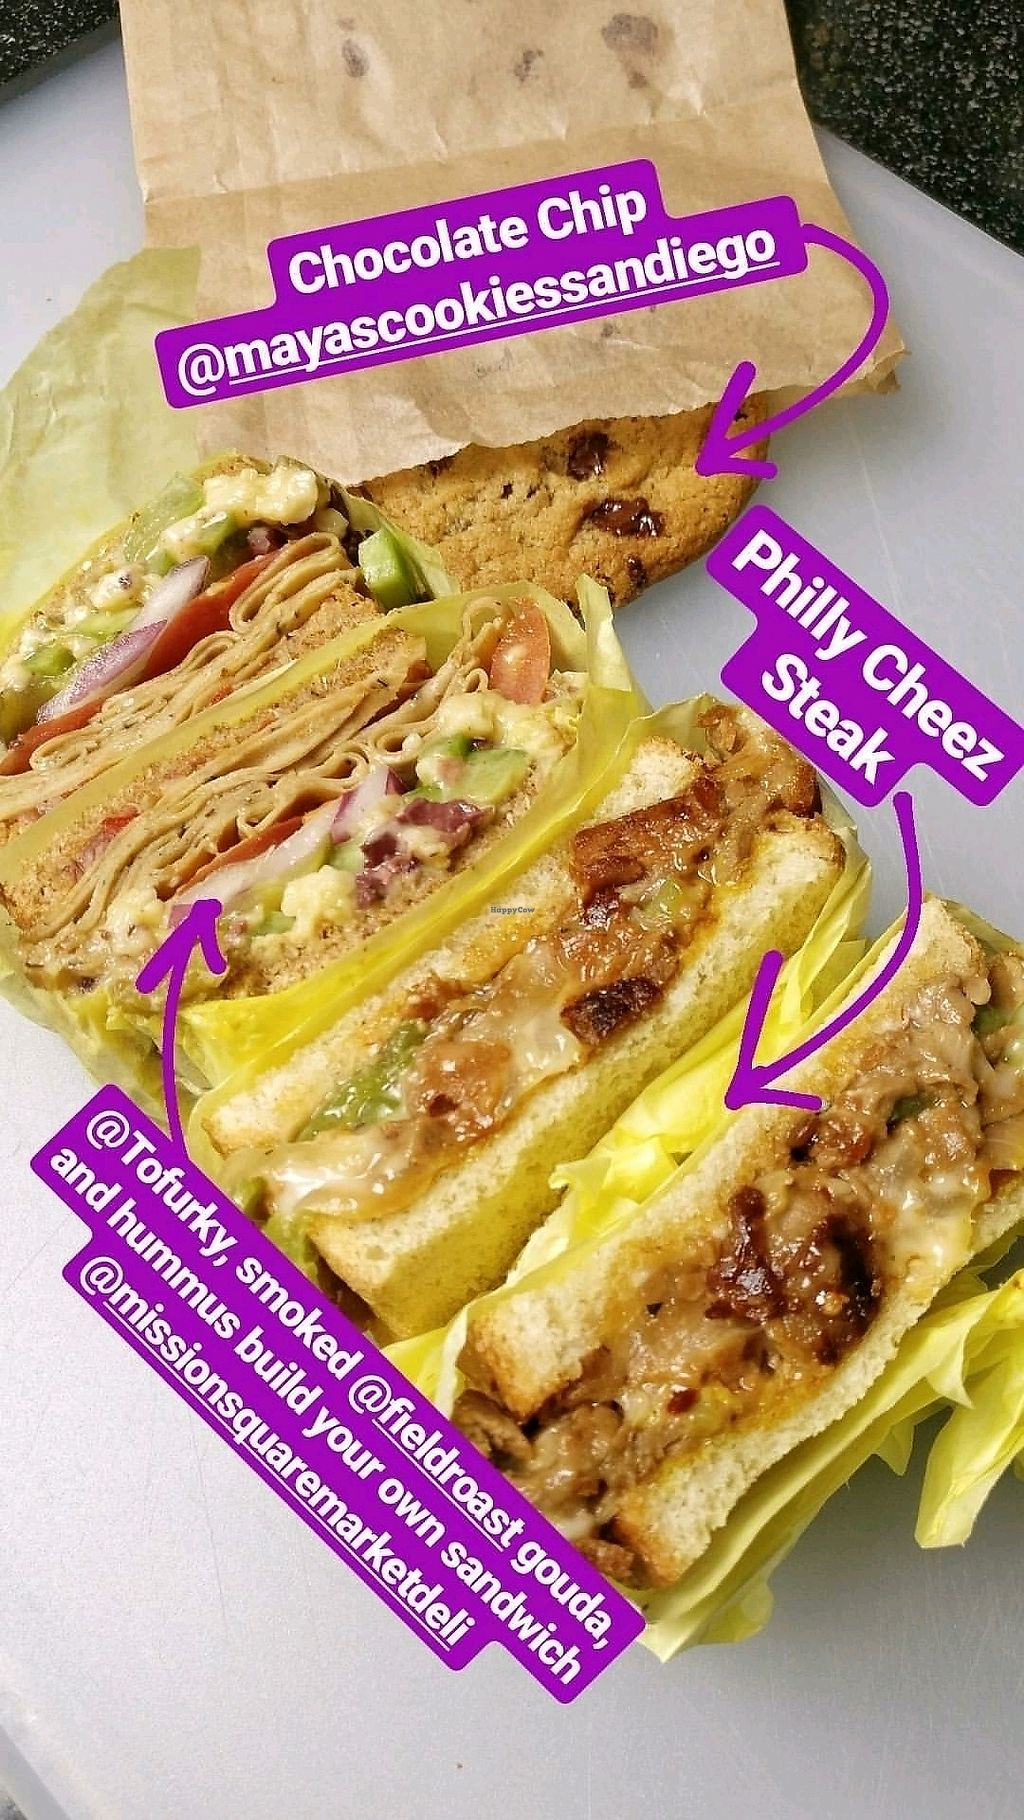 """Photo of Mission Square Market Vegan Deli  by <a href=""""/members/profile/KellyBone"""">KellyBone</a> <br/>sandwiches!  <br/> September 10, 2017  - <a href='/contact/abuse/image/88946/302771'>Report</a>"""